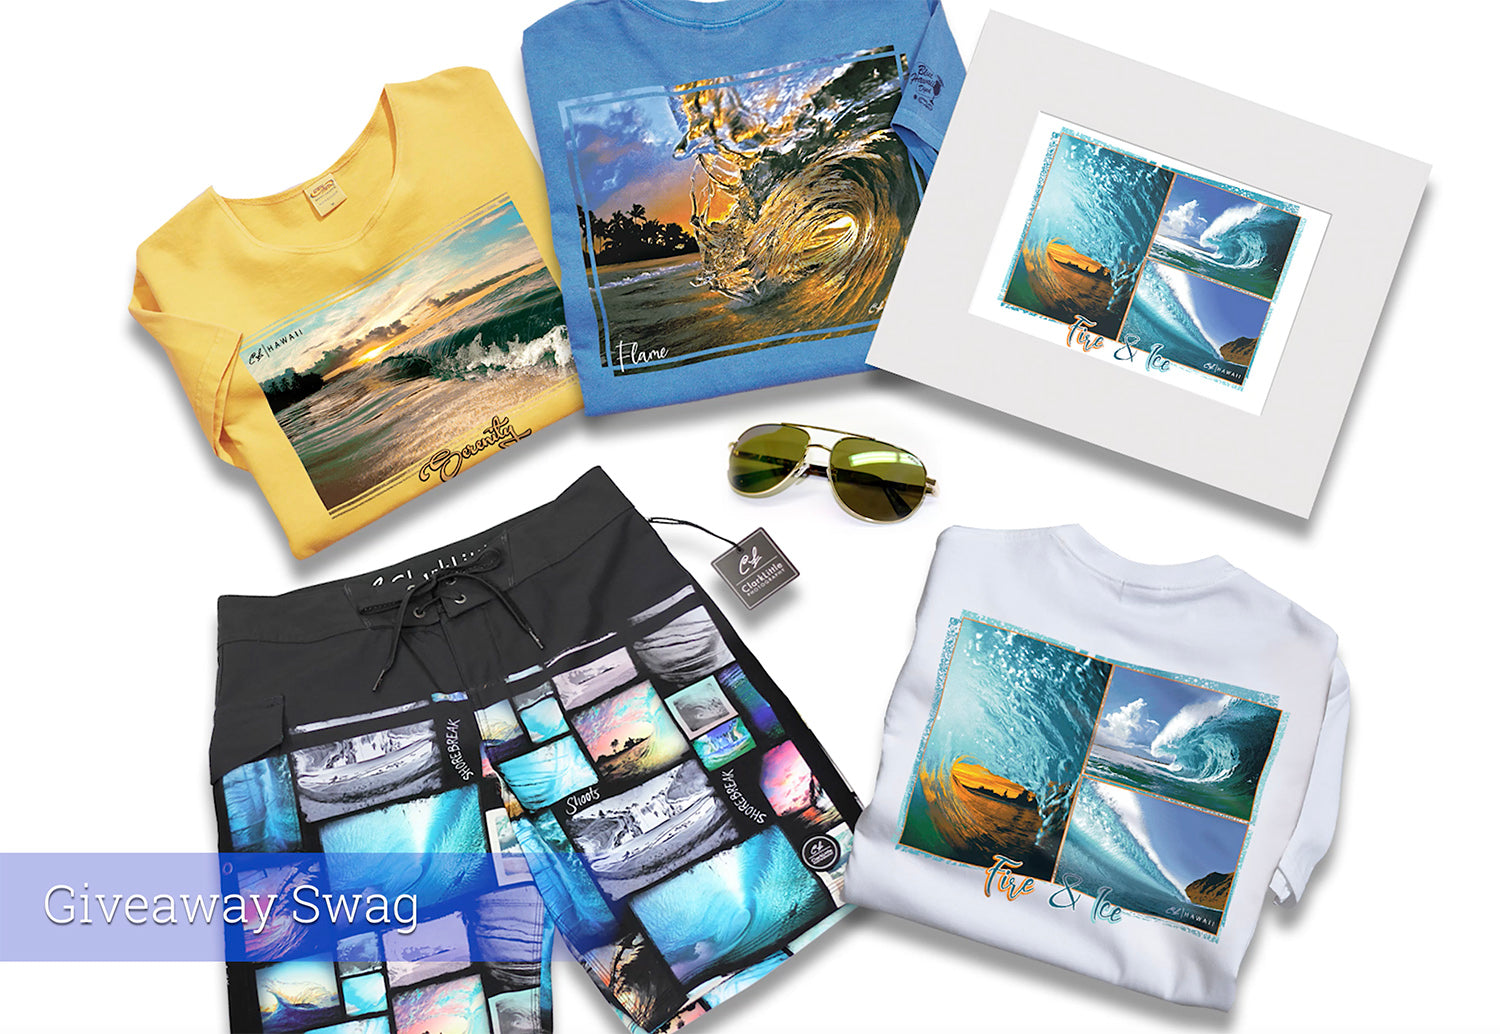 Crazy Shirts giveaway products - t-shirts and boardshorts